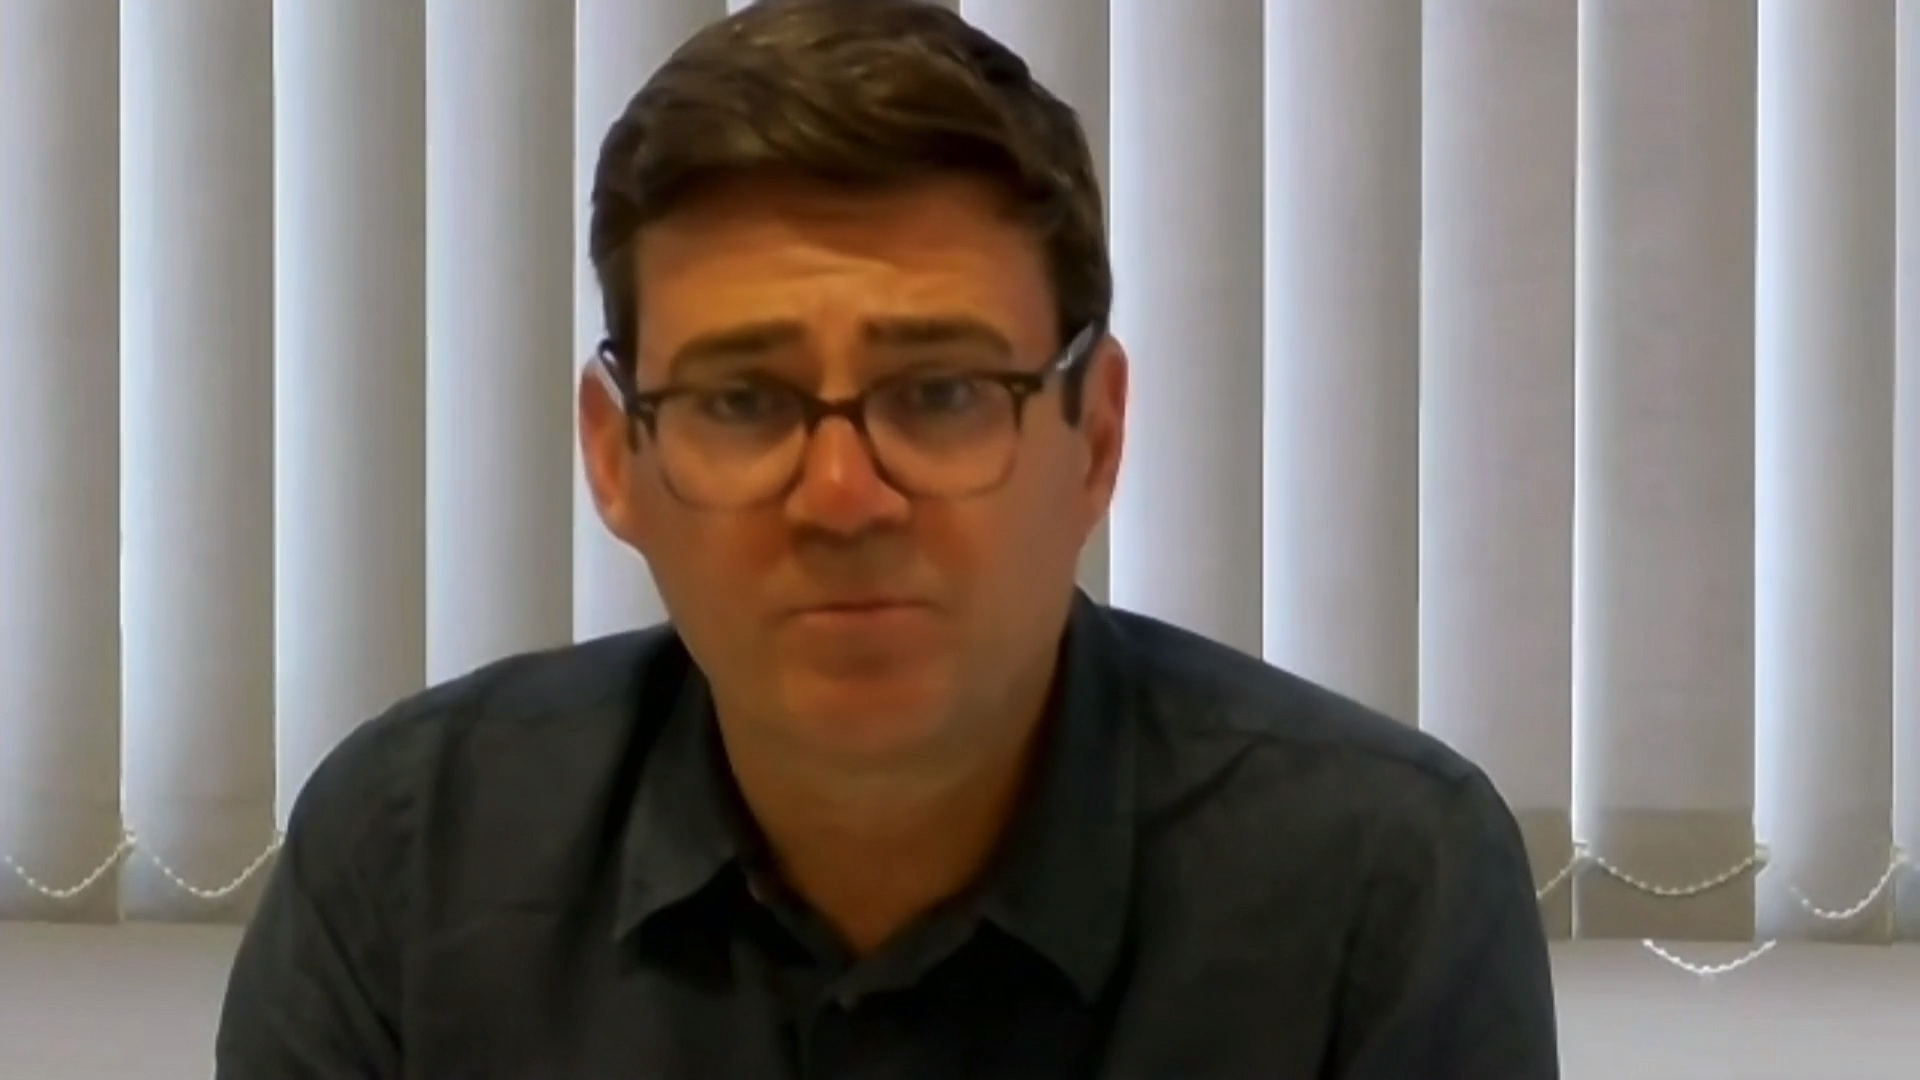 'All parties culpable on social care' – Greater Manchester Mayor Andy Burnham - channel 4